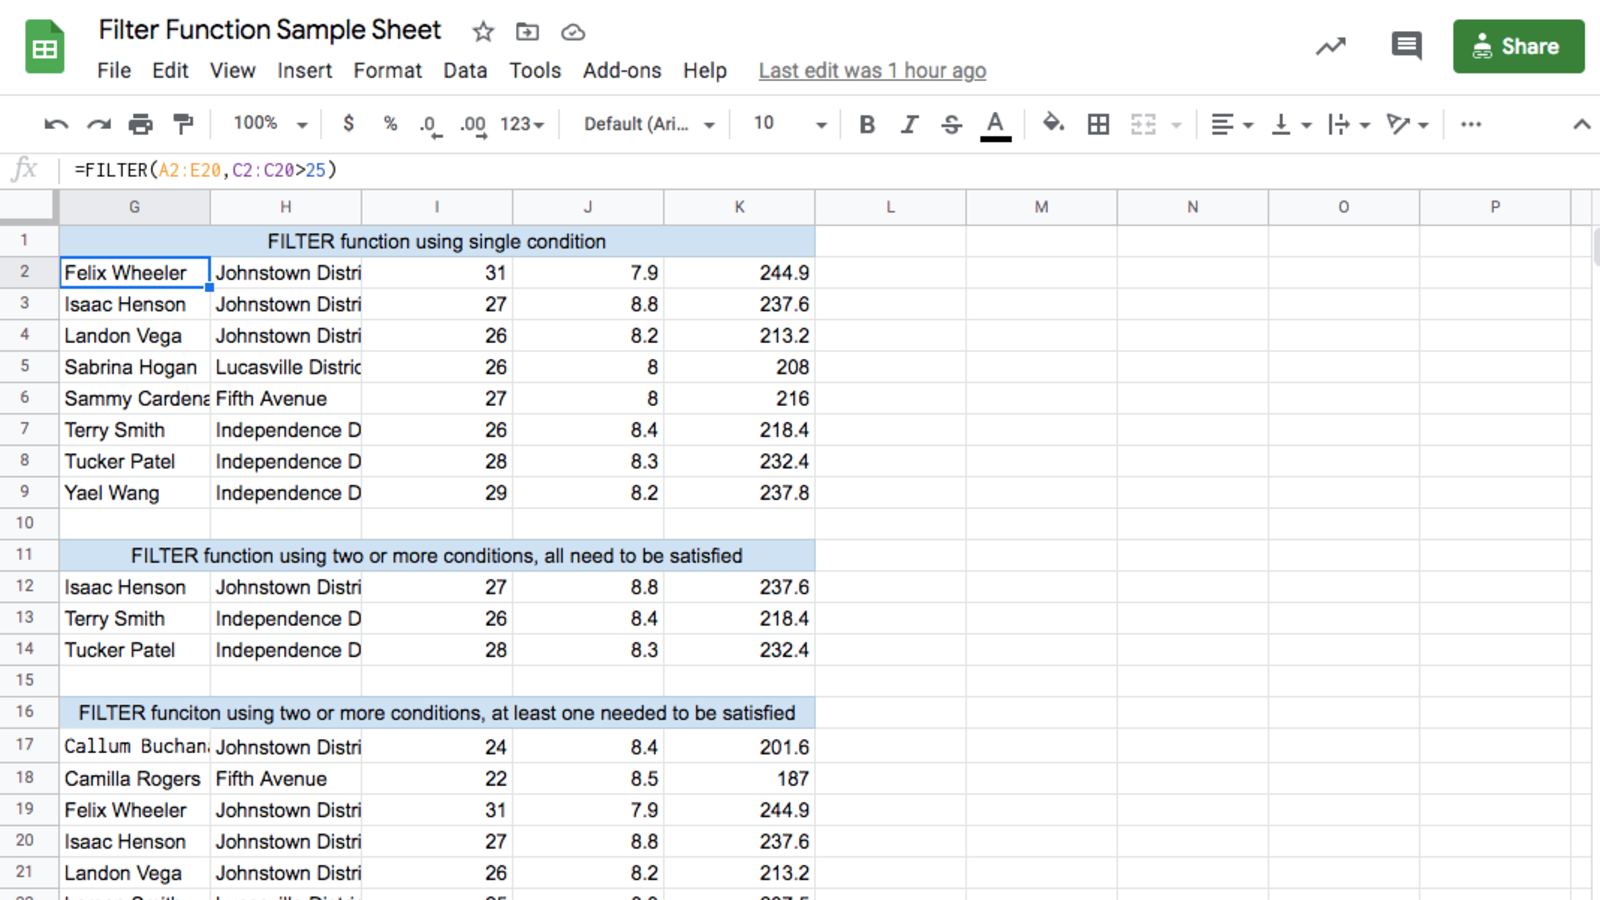 Google Sheet with FILTER function examples